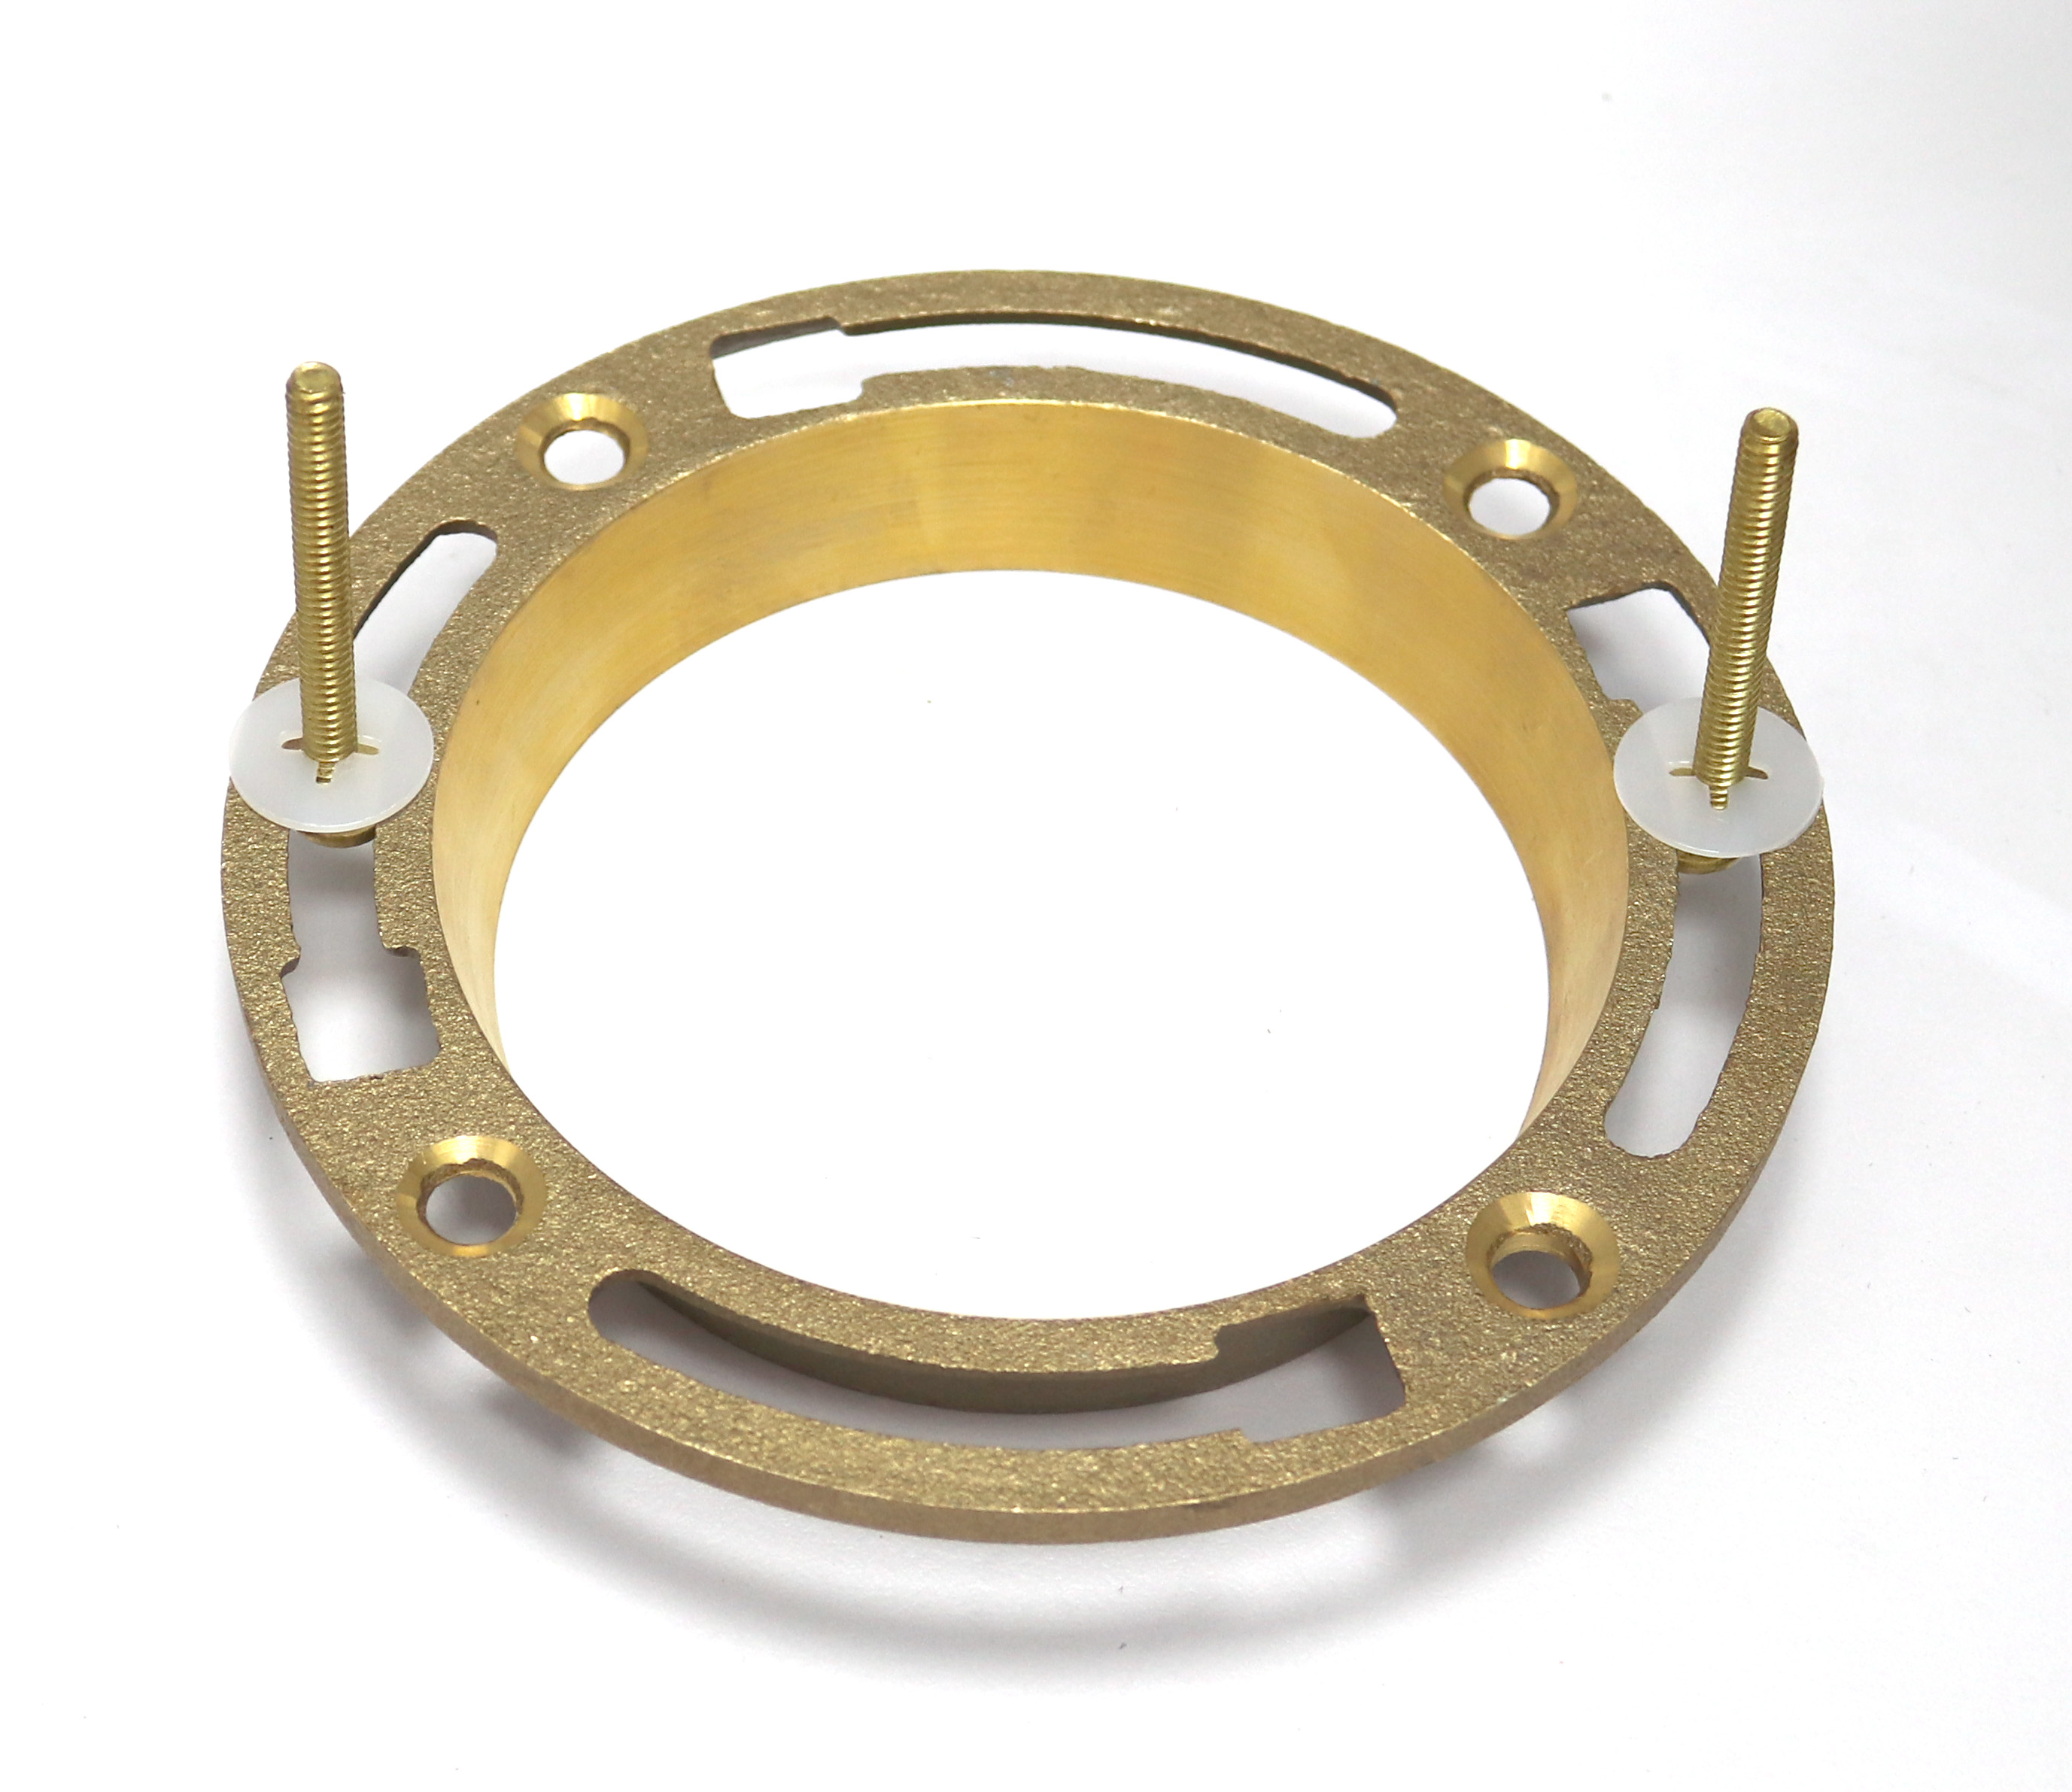 conf C - closet flange with captive washer